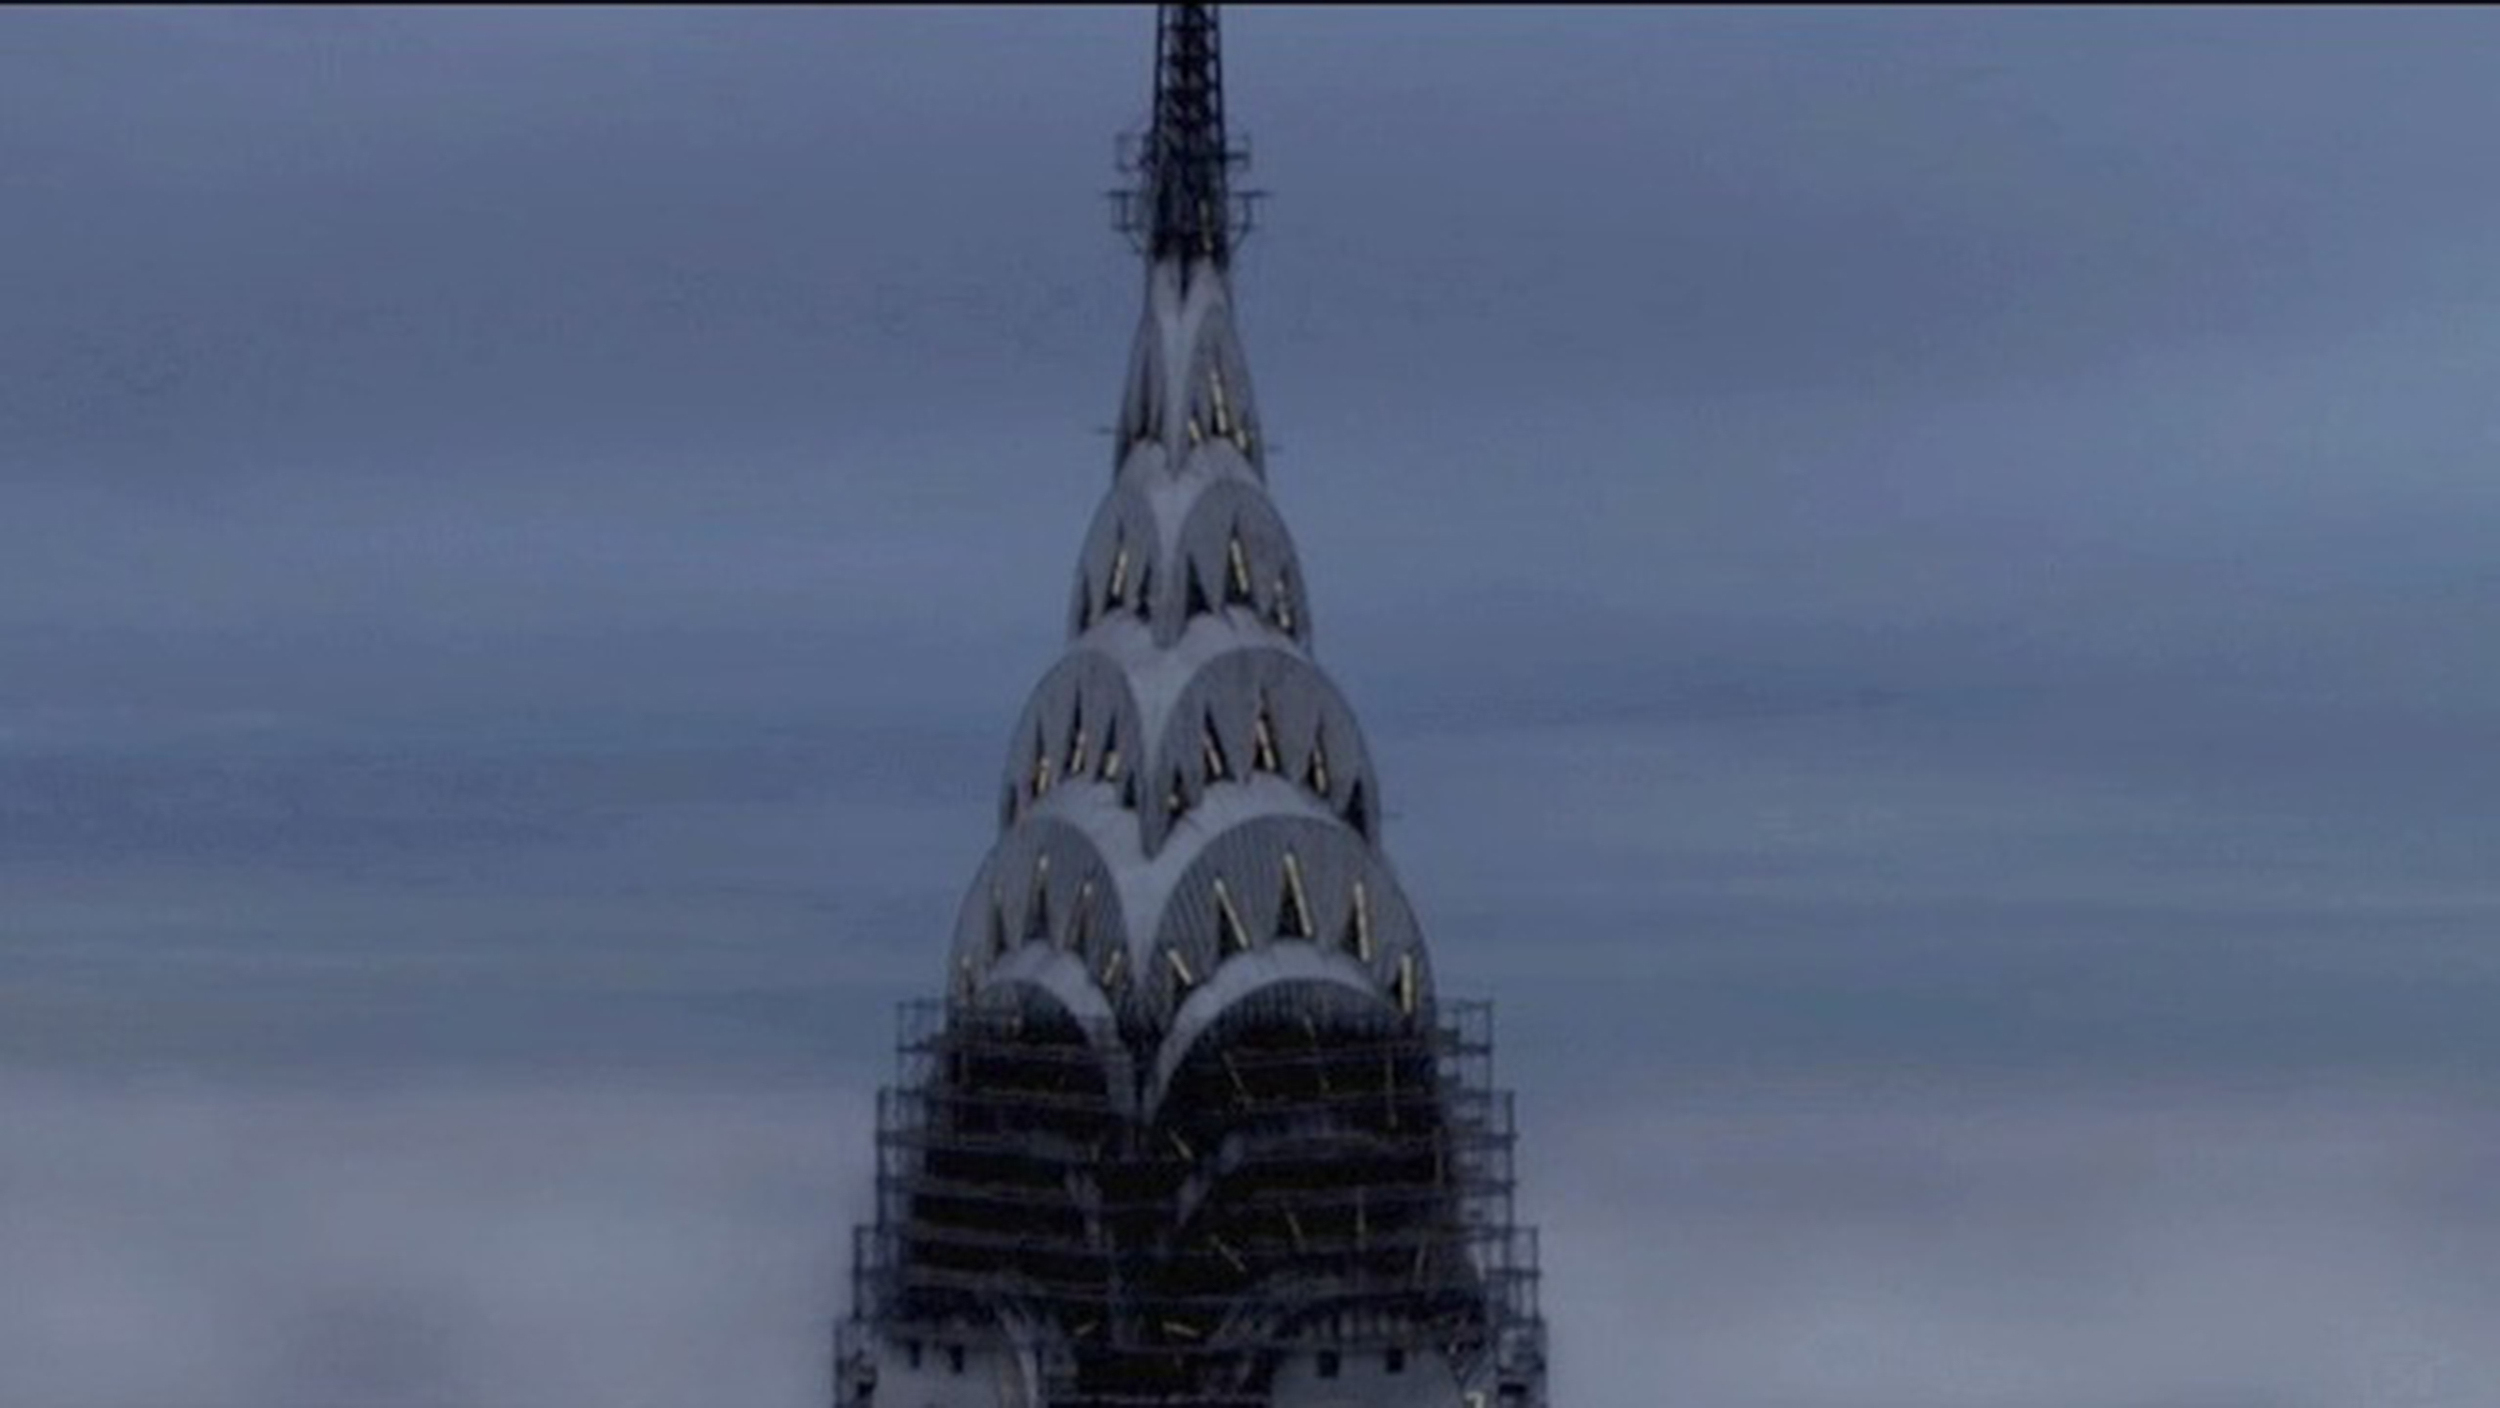 Cremaster 3 composite of Chrysler Building under construction. 3D scaffolding added. I served as Visual Effects Supervisor on Cremaster 3.